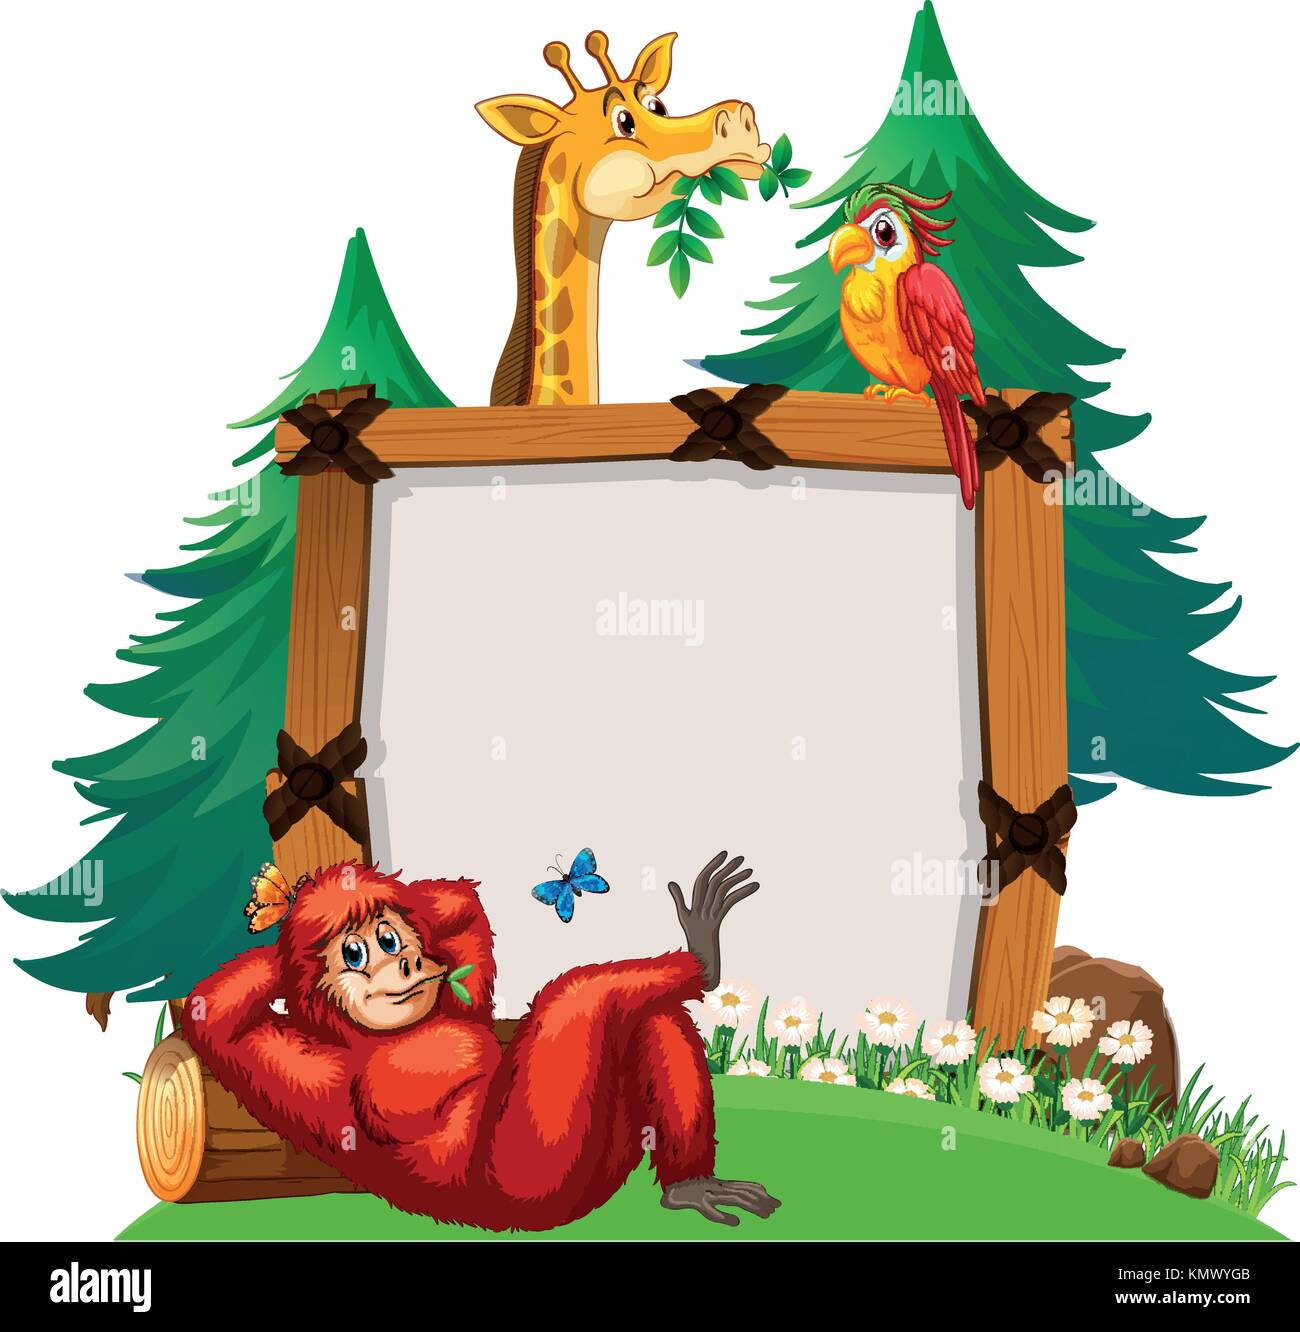 board template with cute animals in zoo illustration stock vector